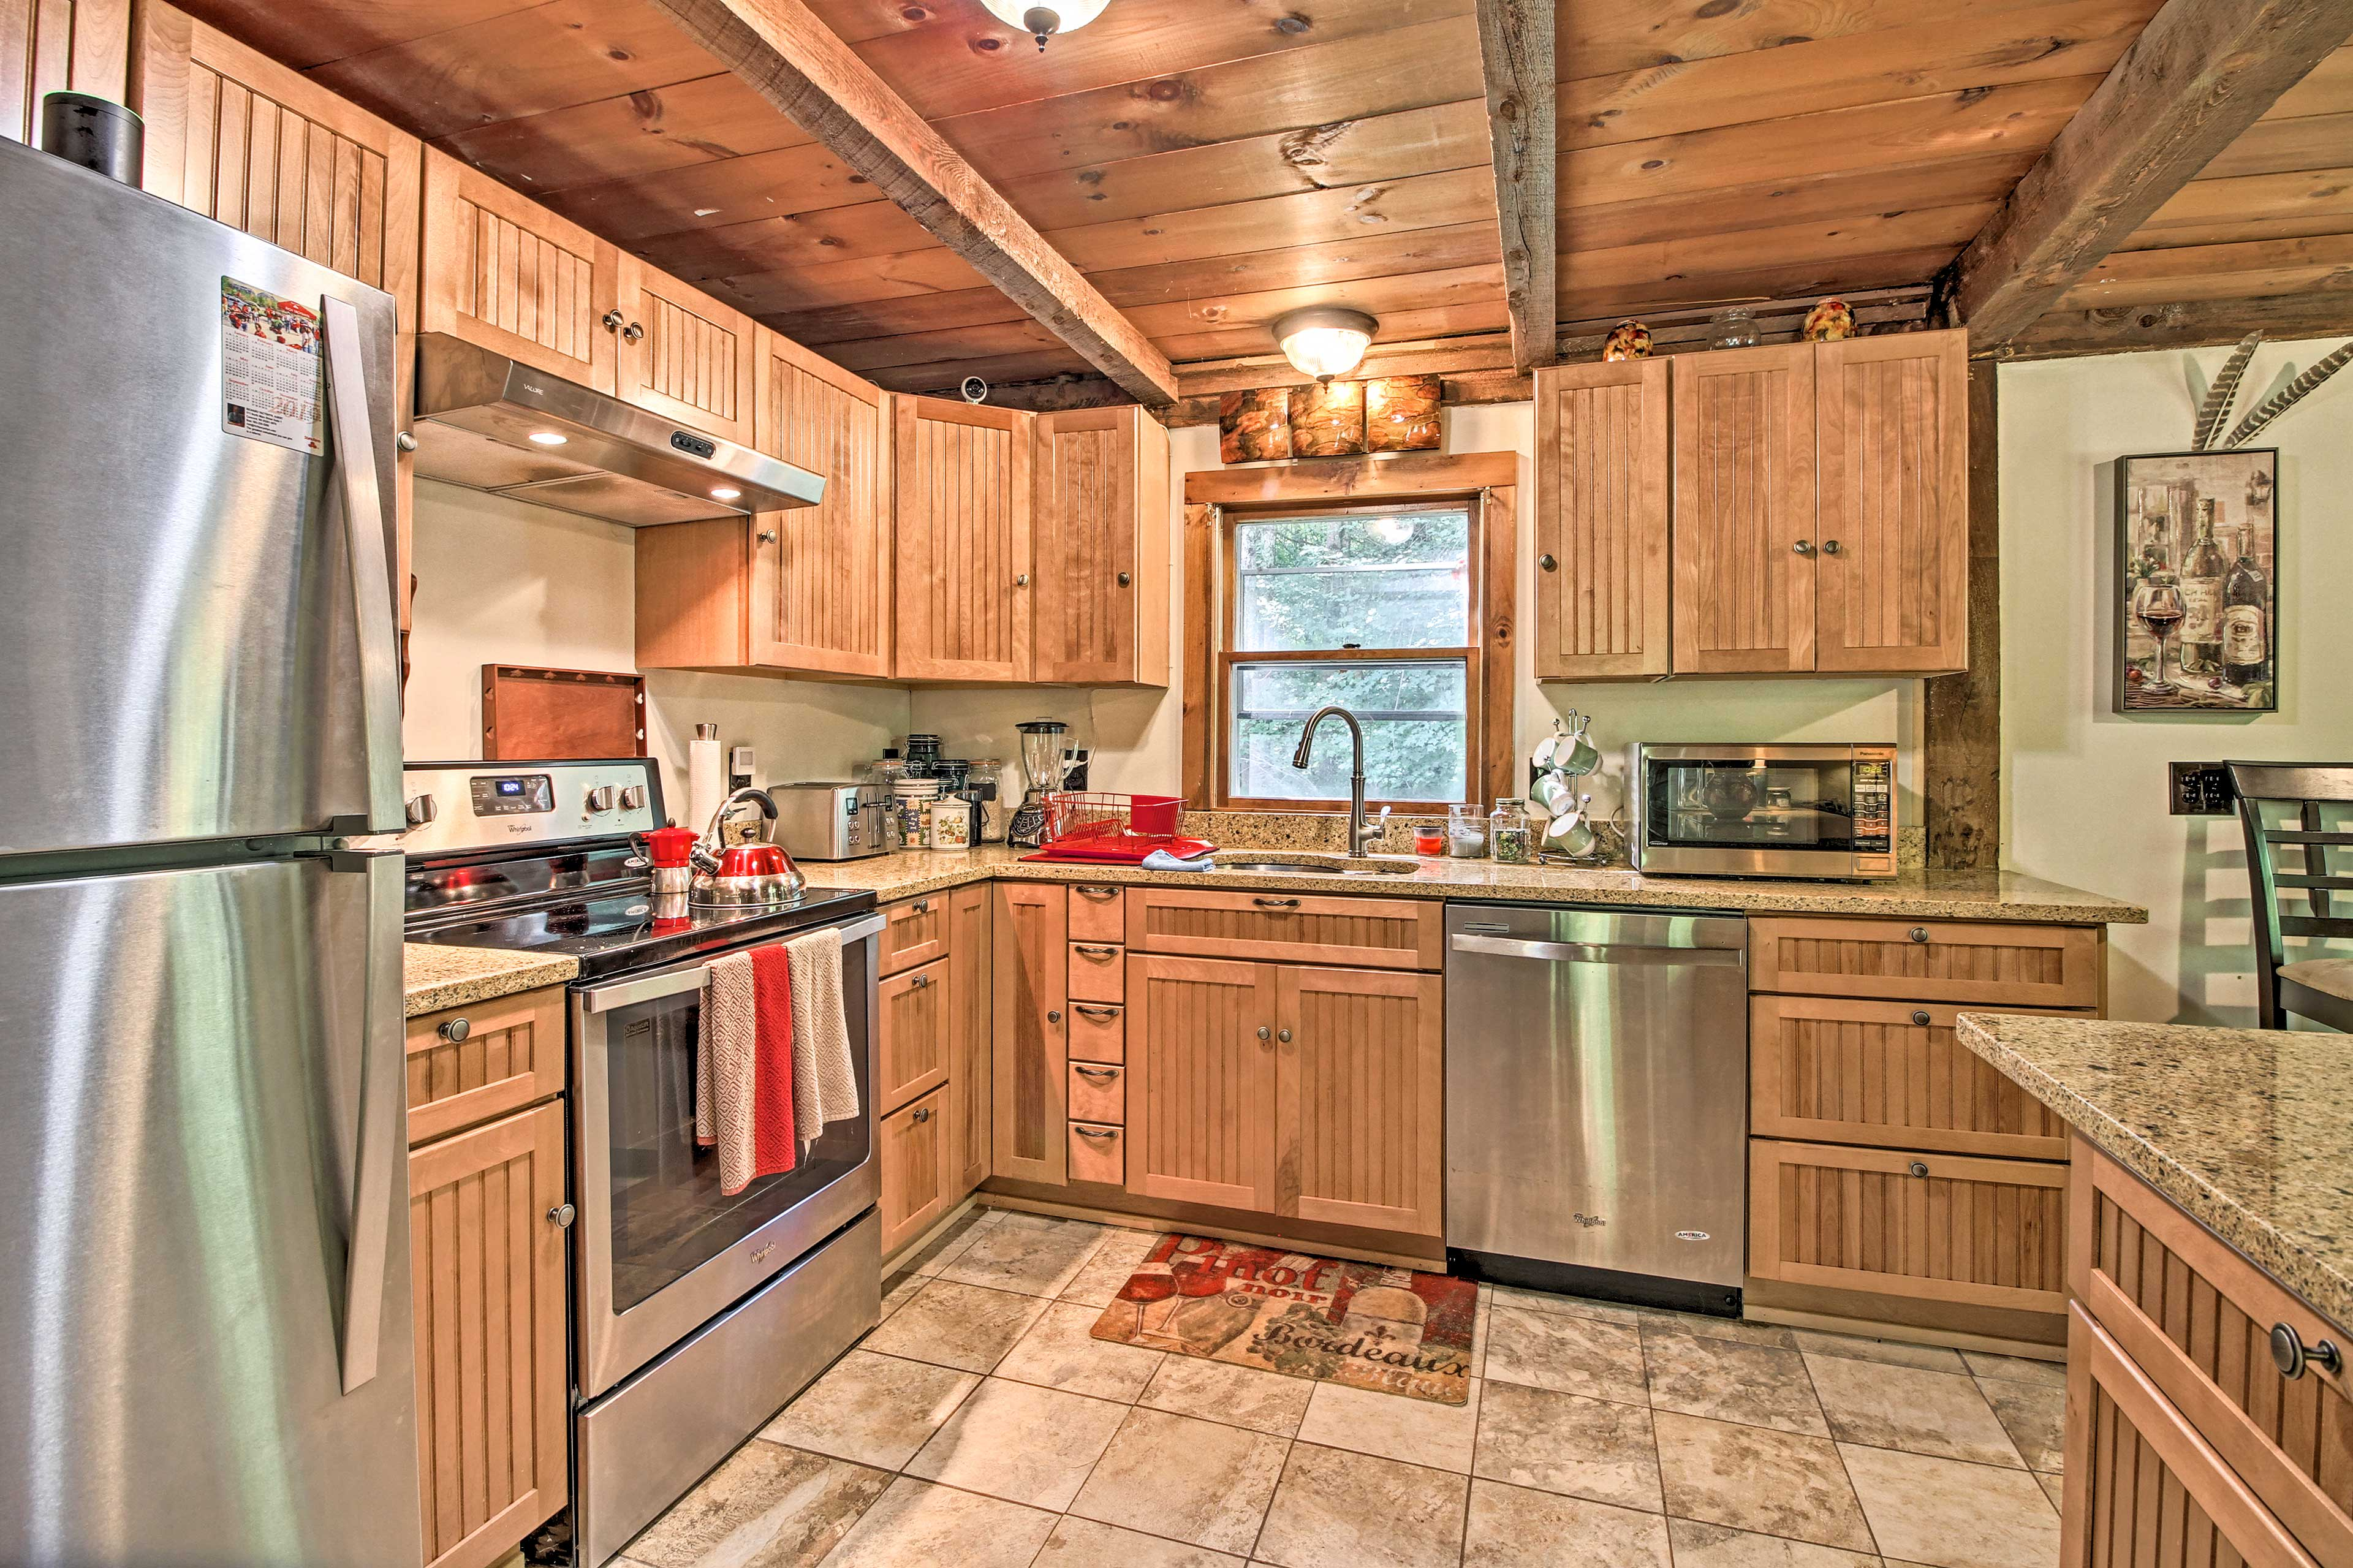 Stainless steel appliances highlight the kitchen.